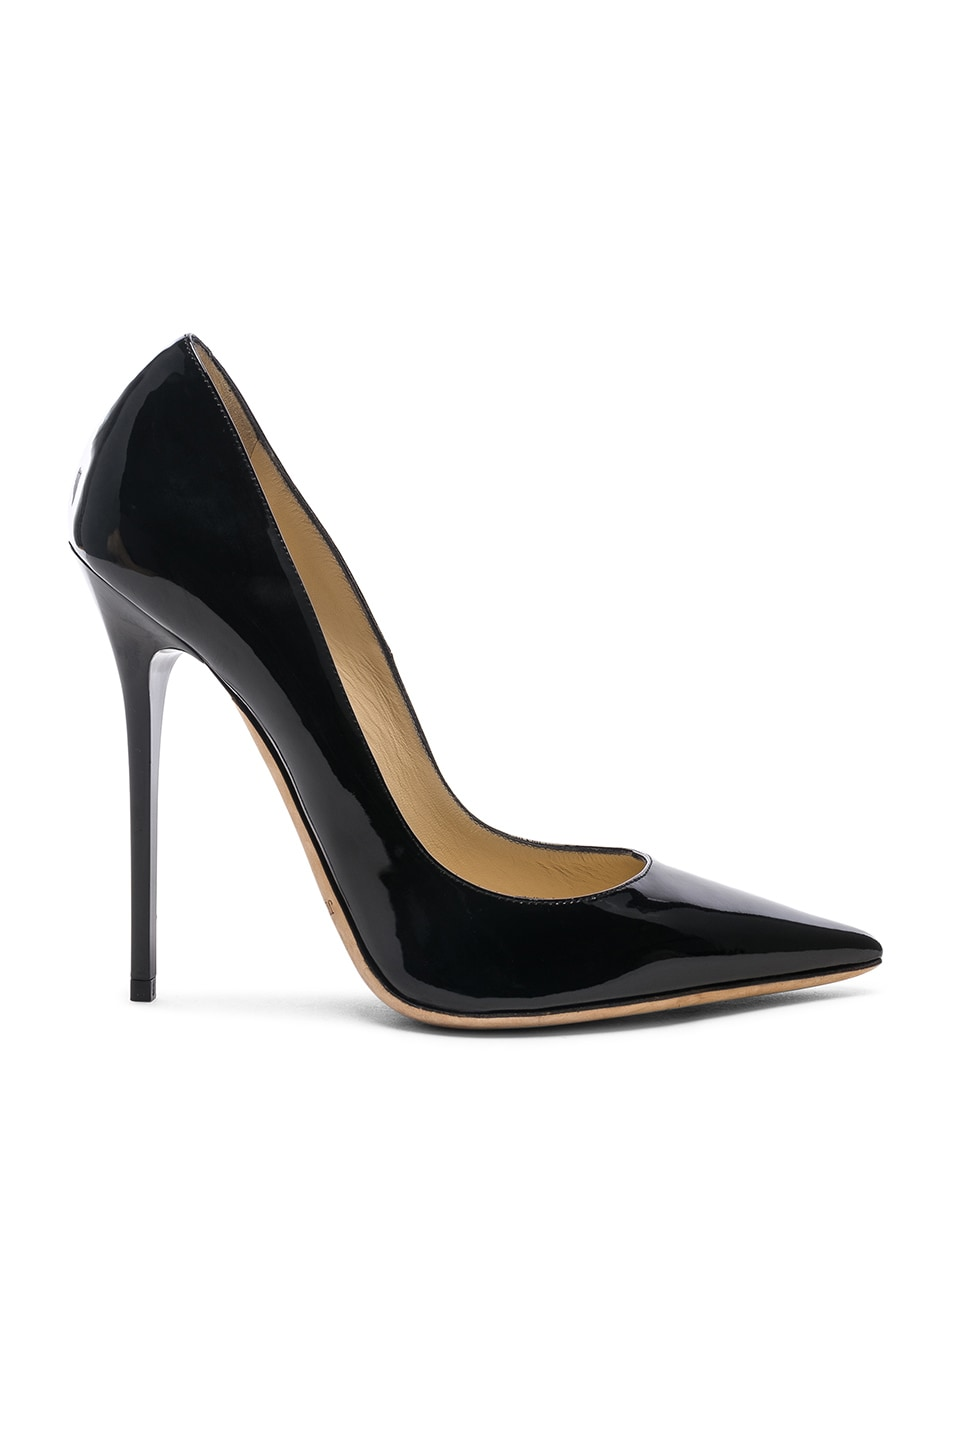 Image 1 of Jimmy Choo Anouk 120 Patent Leather Pump in Black